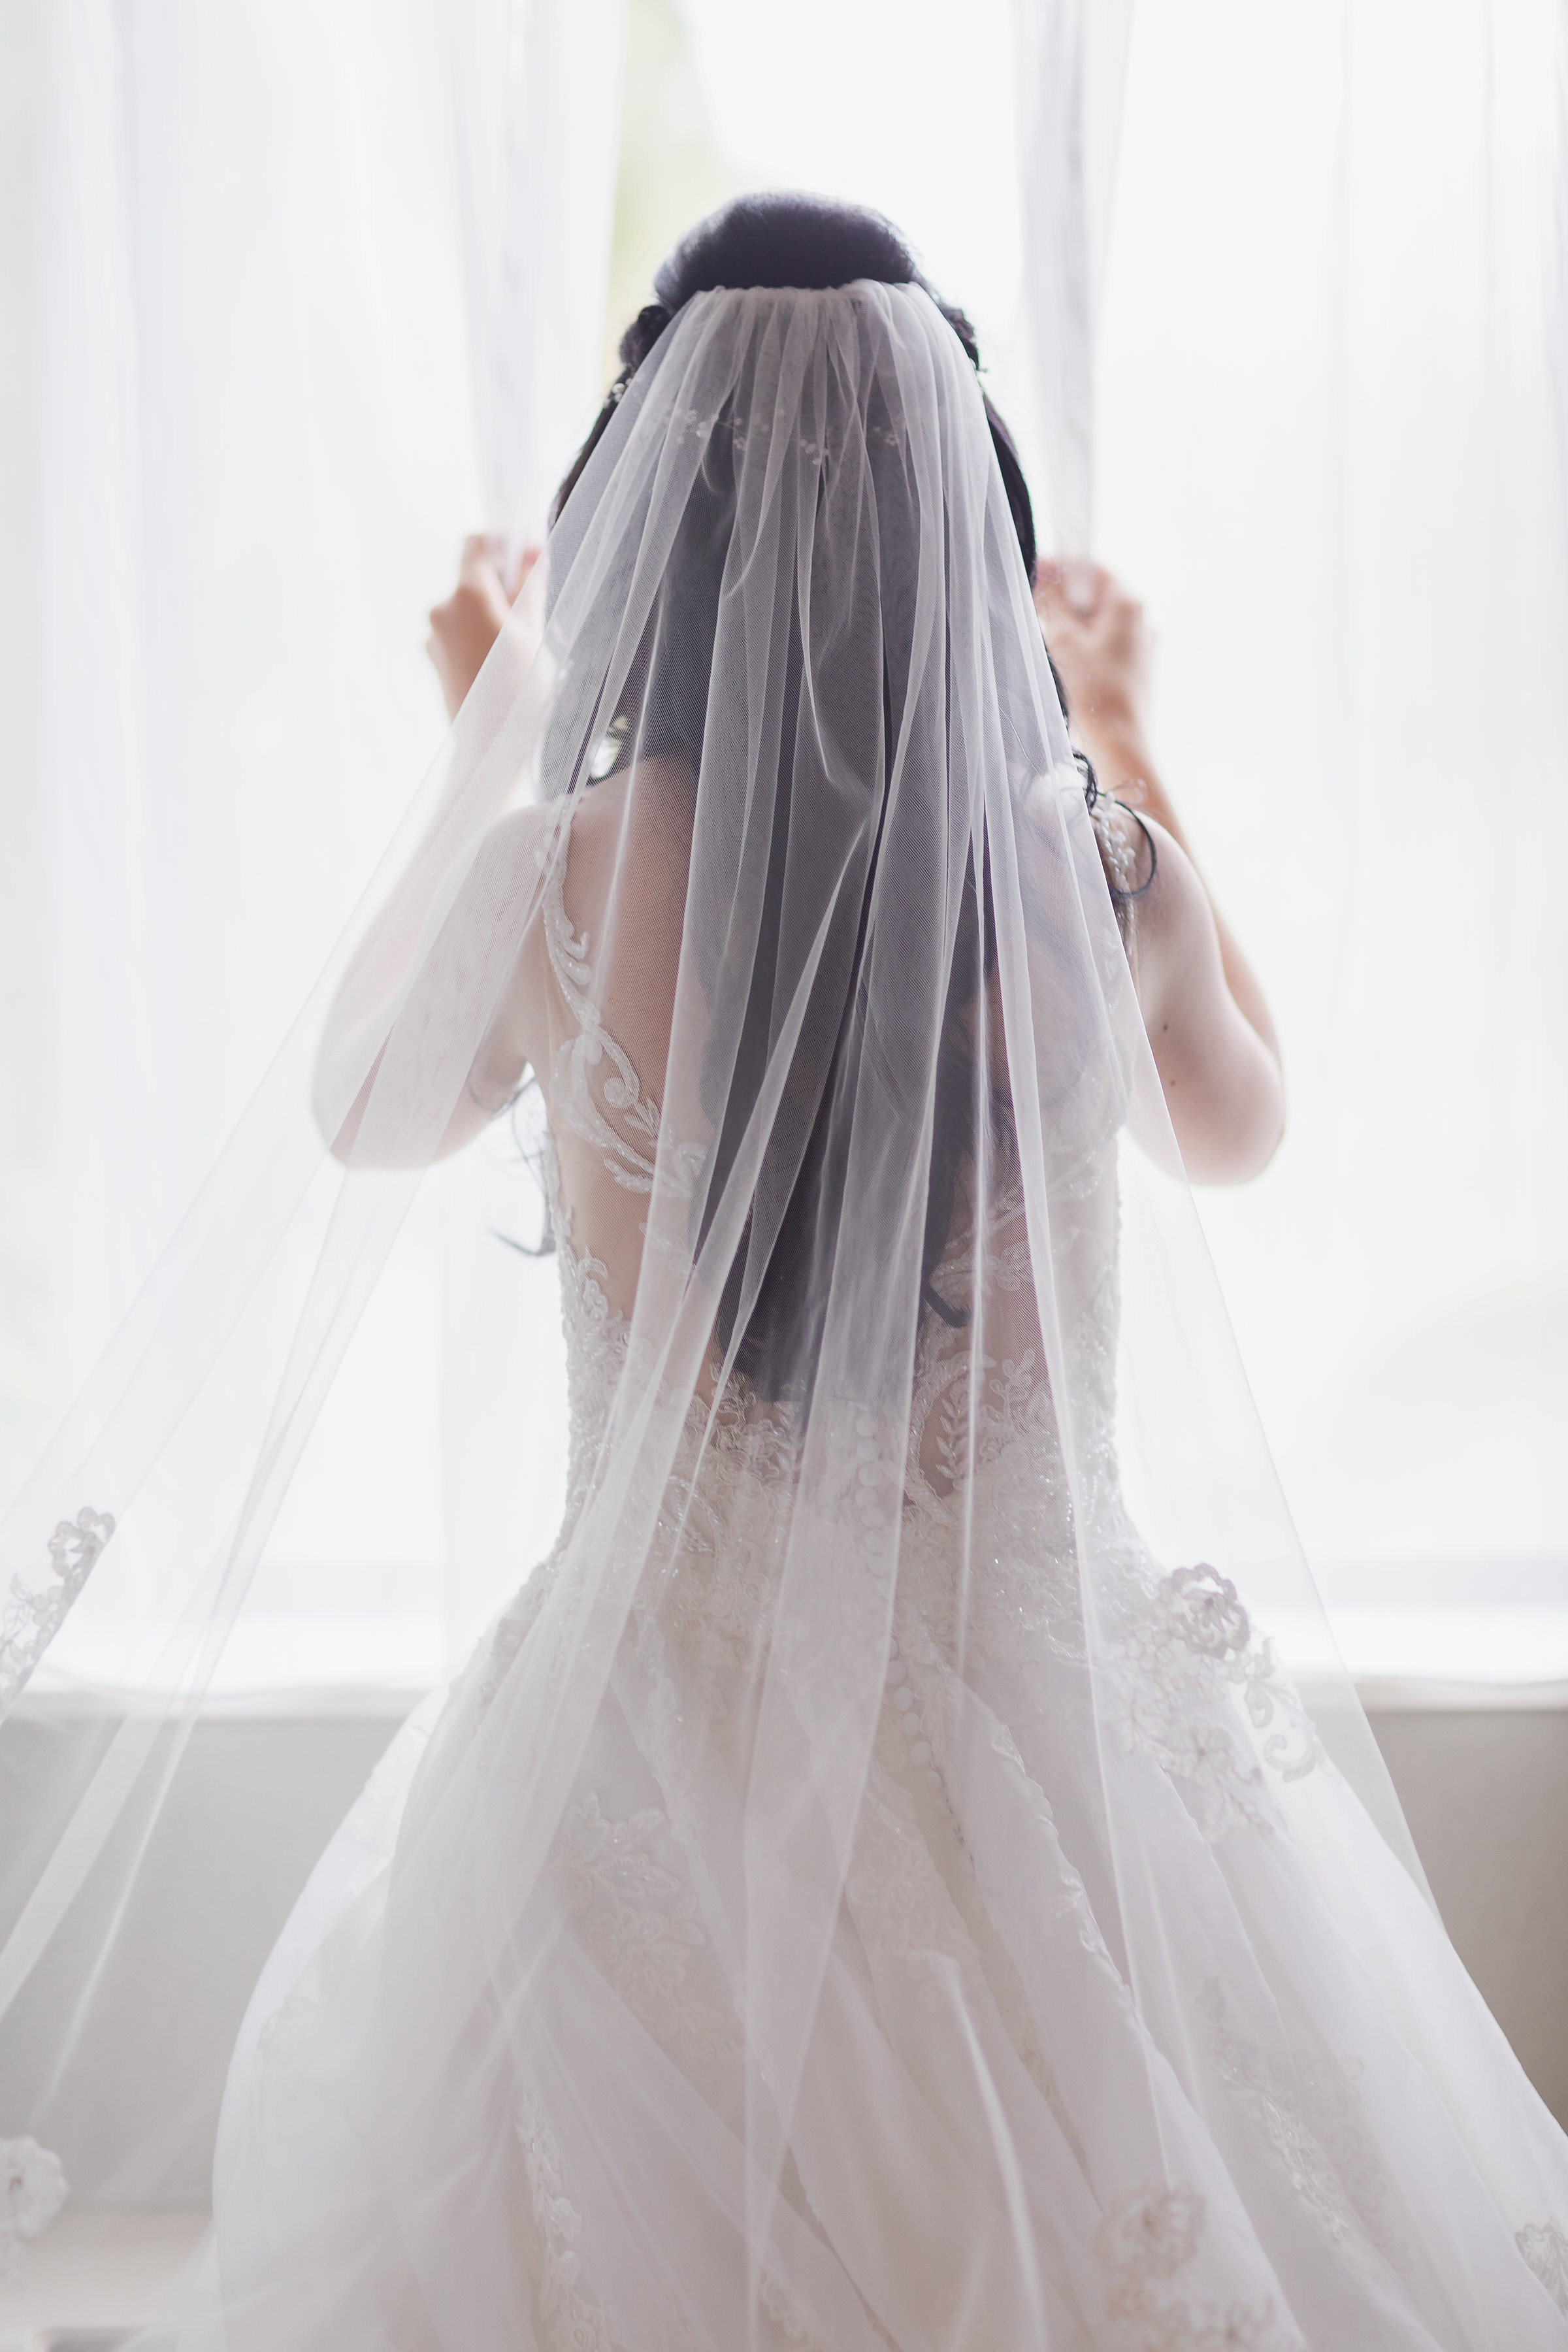 Bride Getting Ready Looking out Window with Veil.jpg